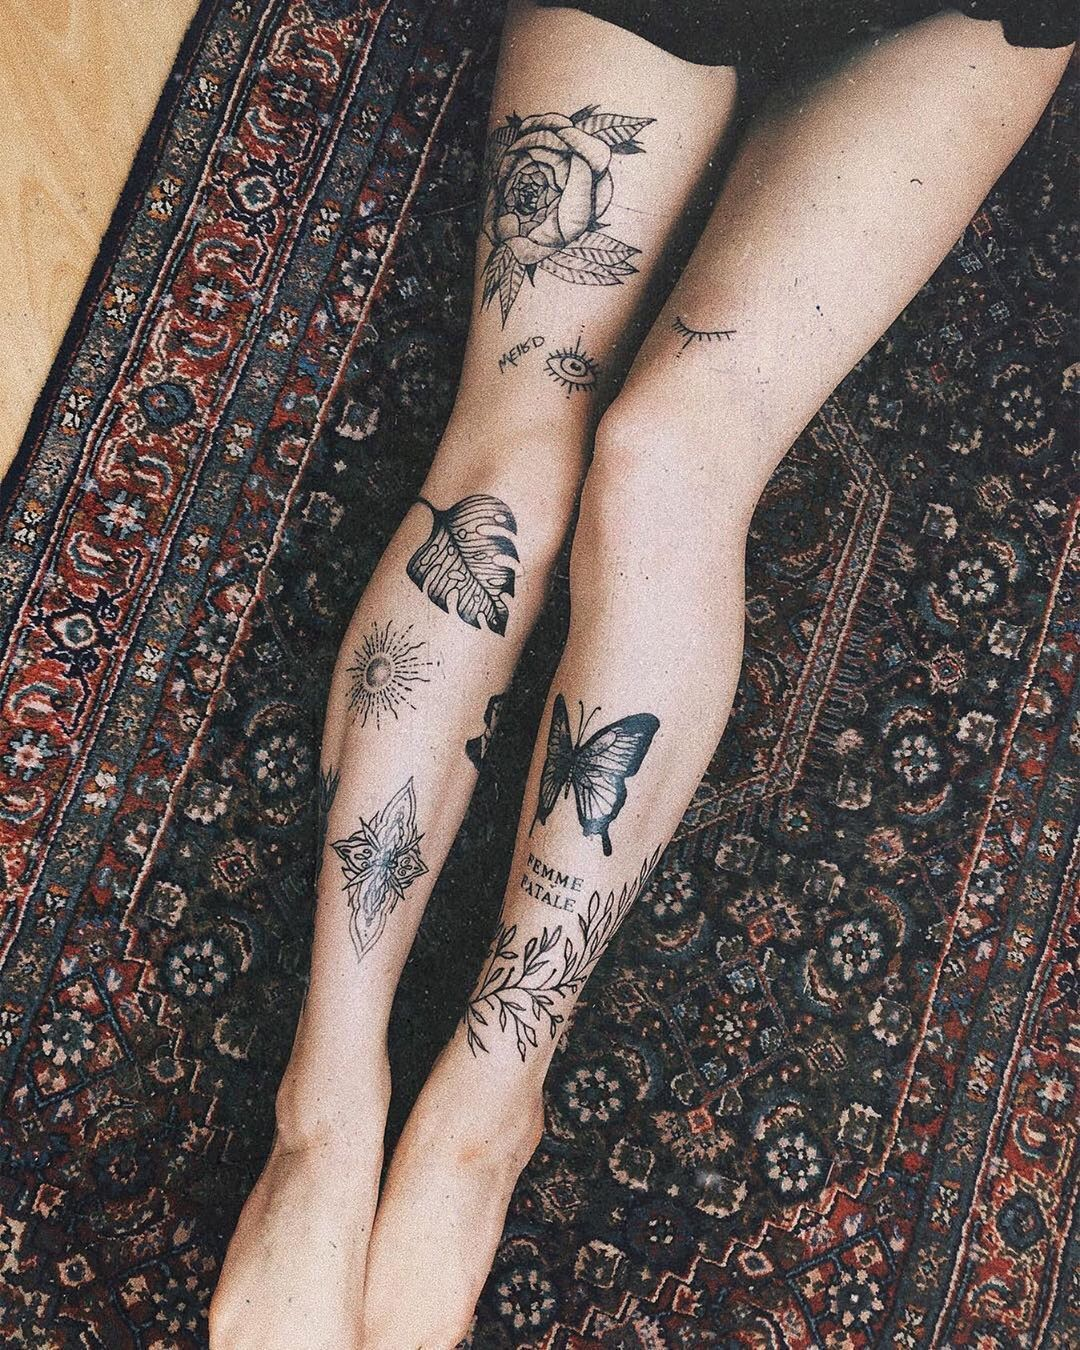 """Knee Tattoo Ideas : tattoo, ideas, Tattoos, Ideas, Instagram:, """"Tag, Someone, Loves, 😍..., Effective, Pictures, Offer, About, Tat…, Tattoos,, Tattoo,, Women"""